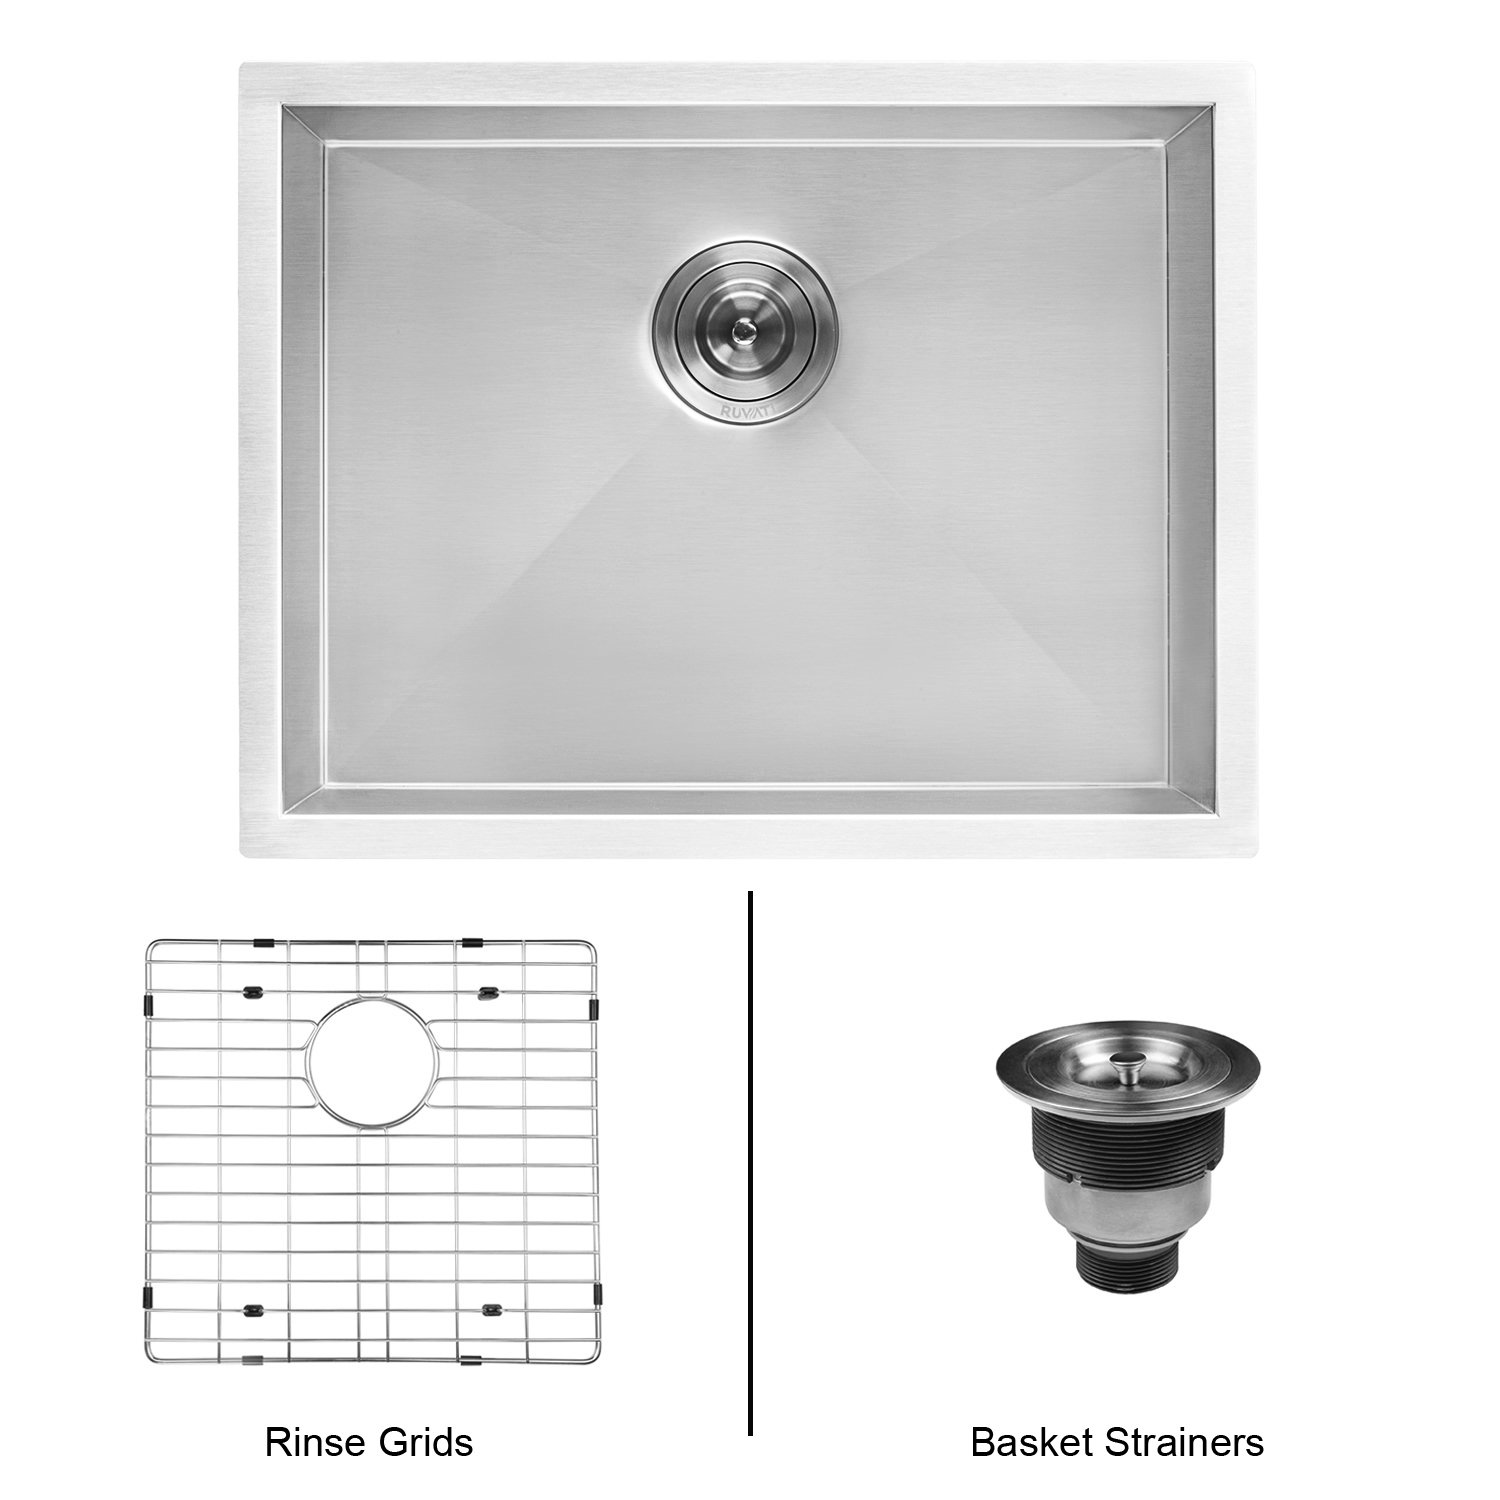 Ruvati 23'' x 18'' x 12'' Deep Laundry Utility Sink Undermount 16 Gauge Stainless Steel - RVU6100 by Ruvati